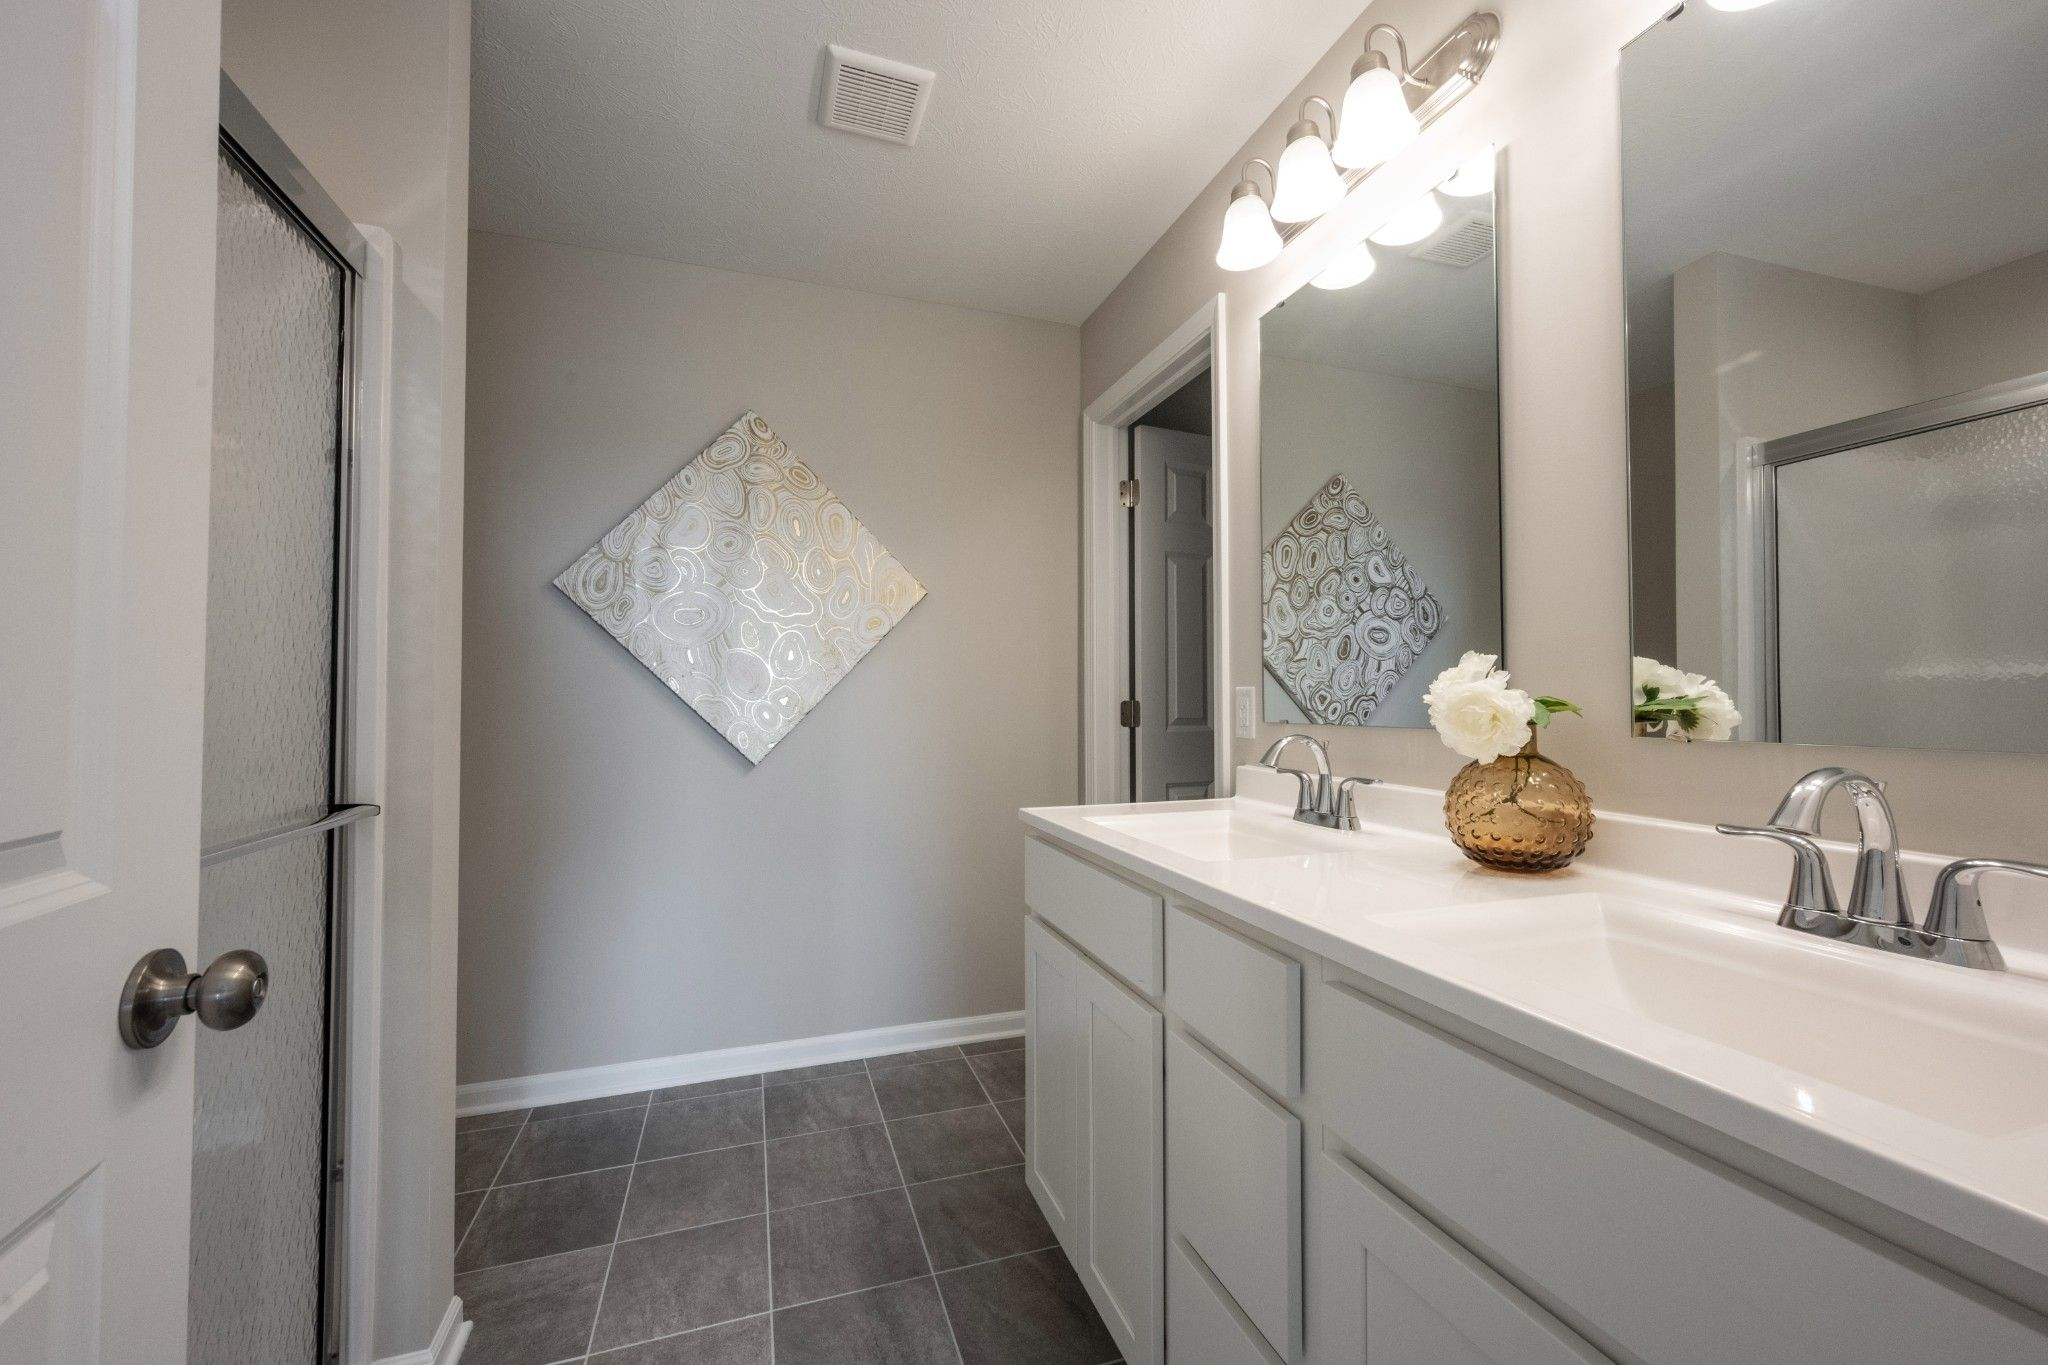 Bathroom featured in the Laine By Olthof Homes in Indianapolis, IN